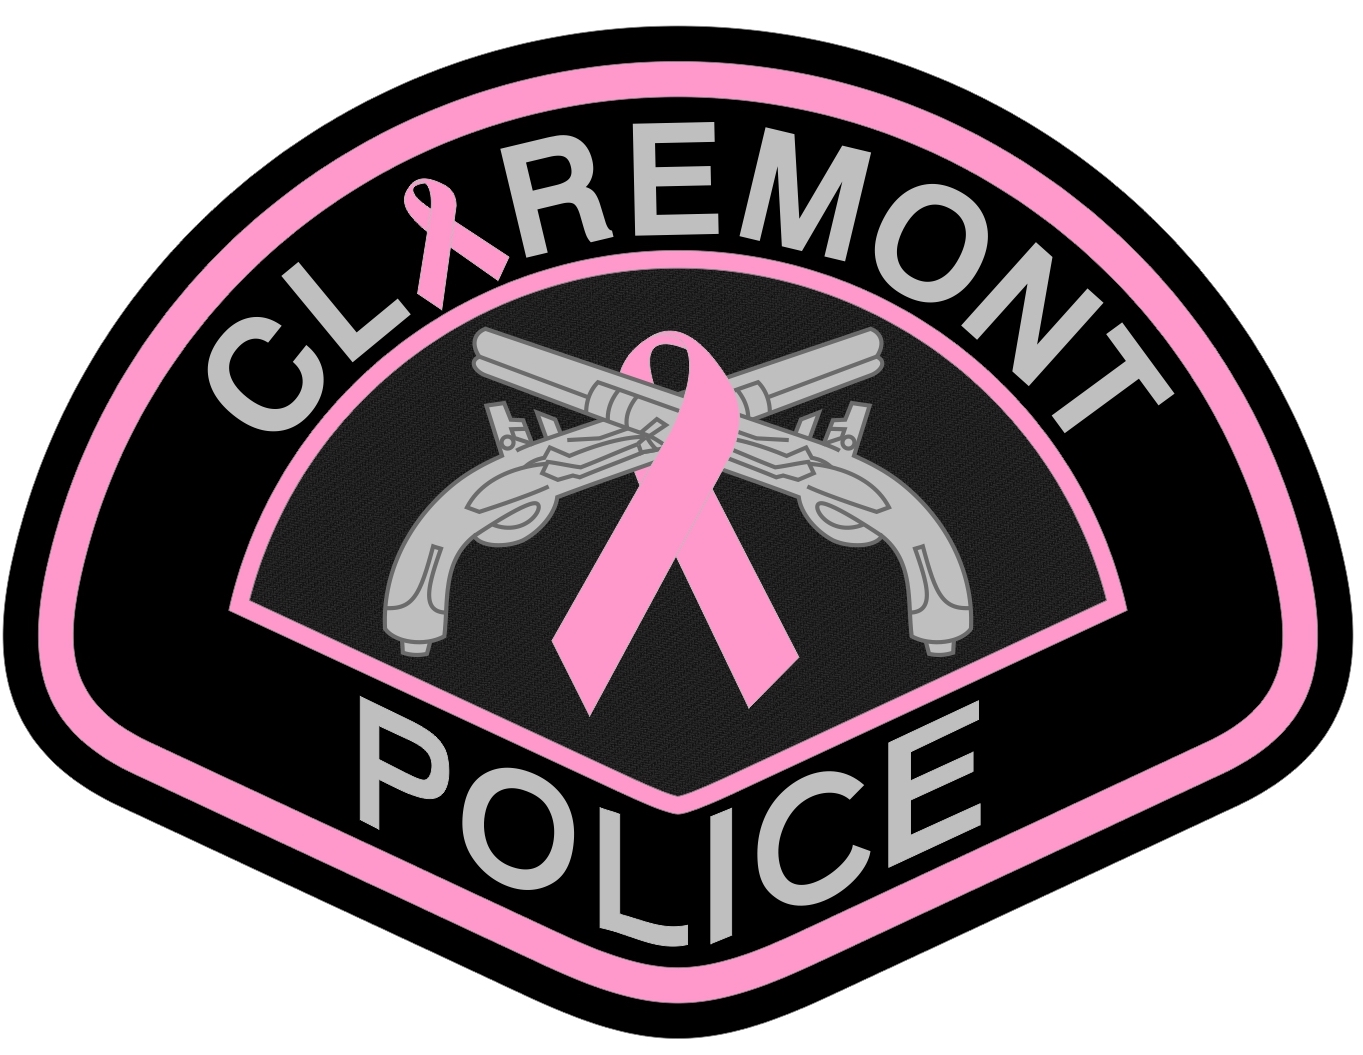 Claremont Police (CA) - PINK PATCH 2018.jpg